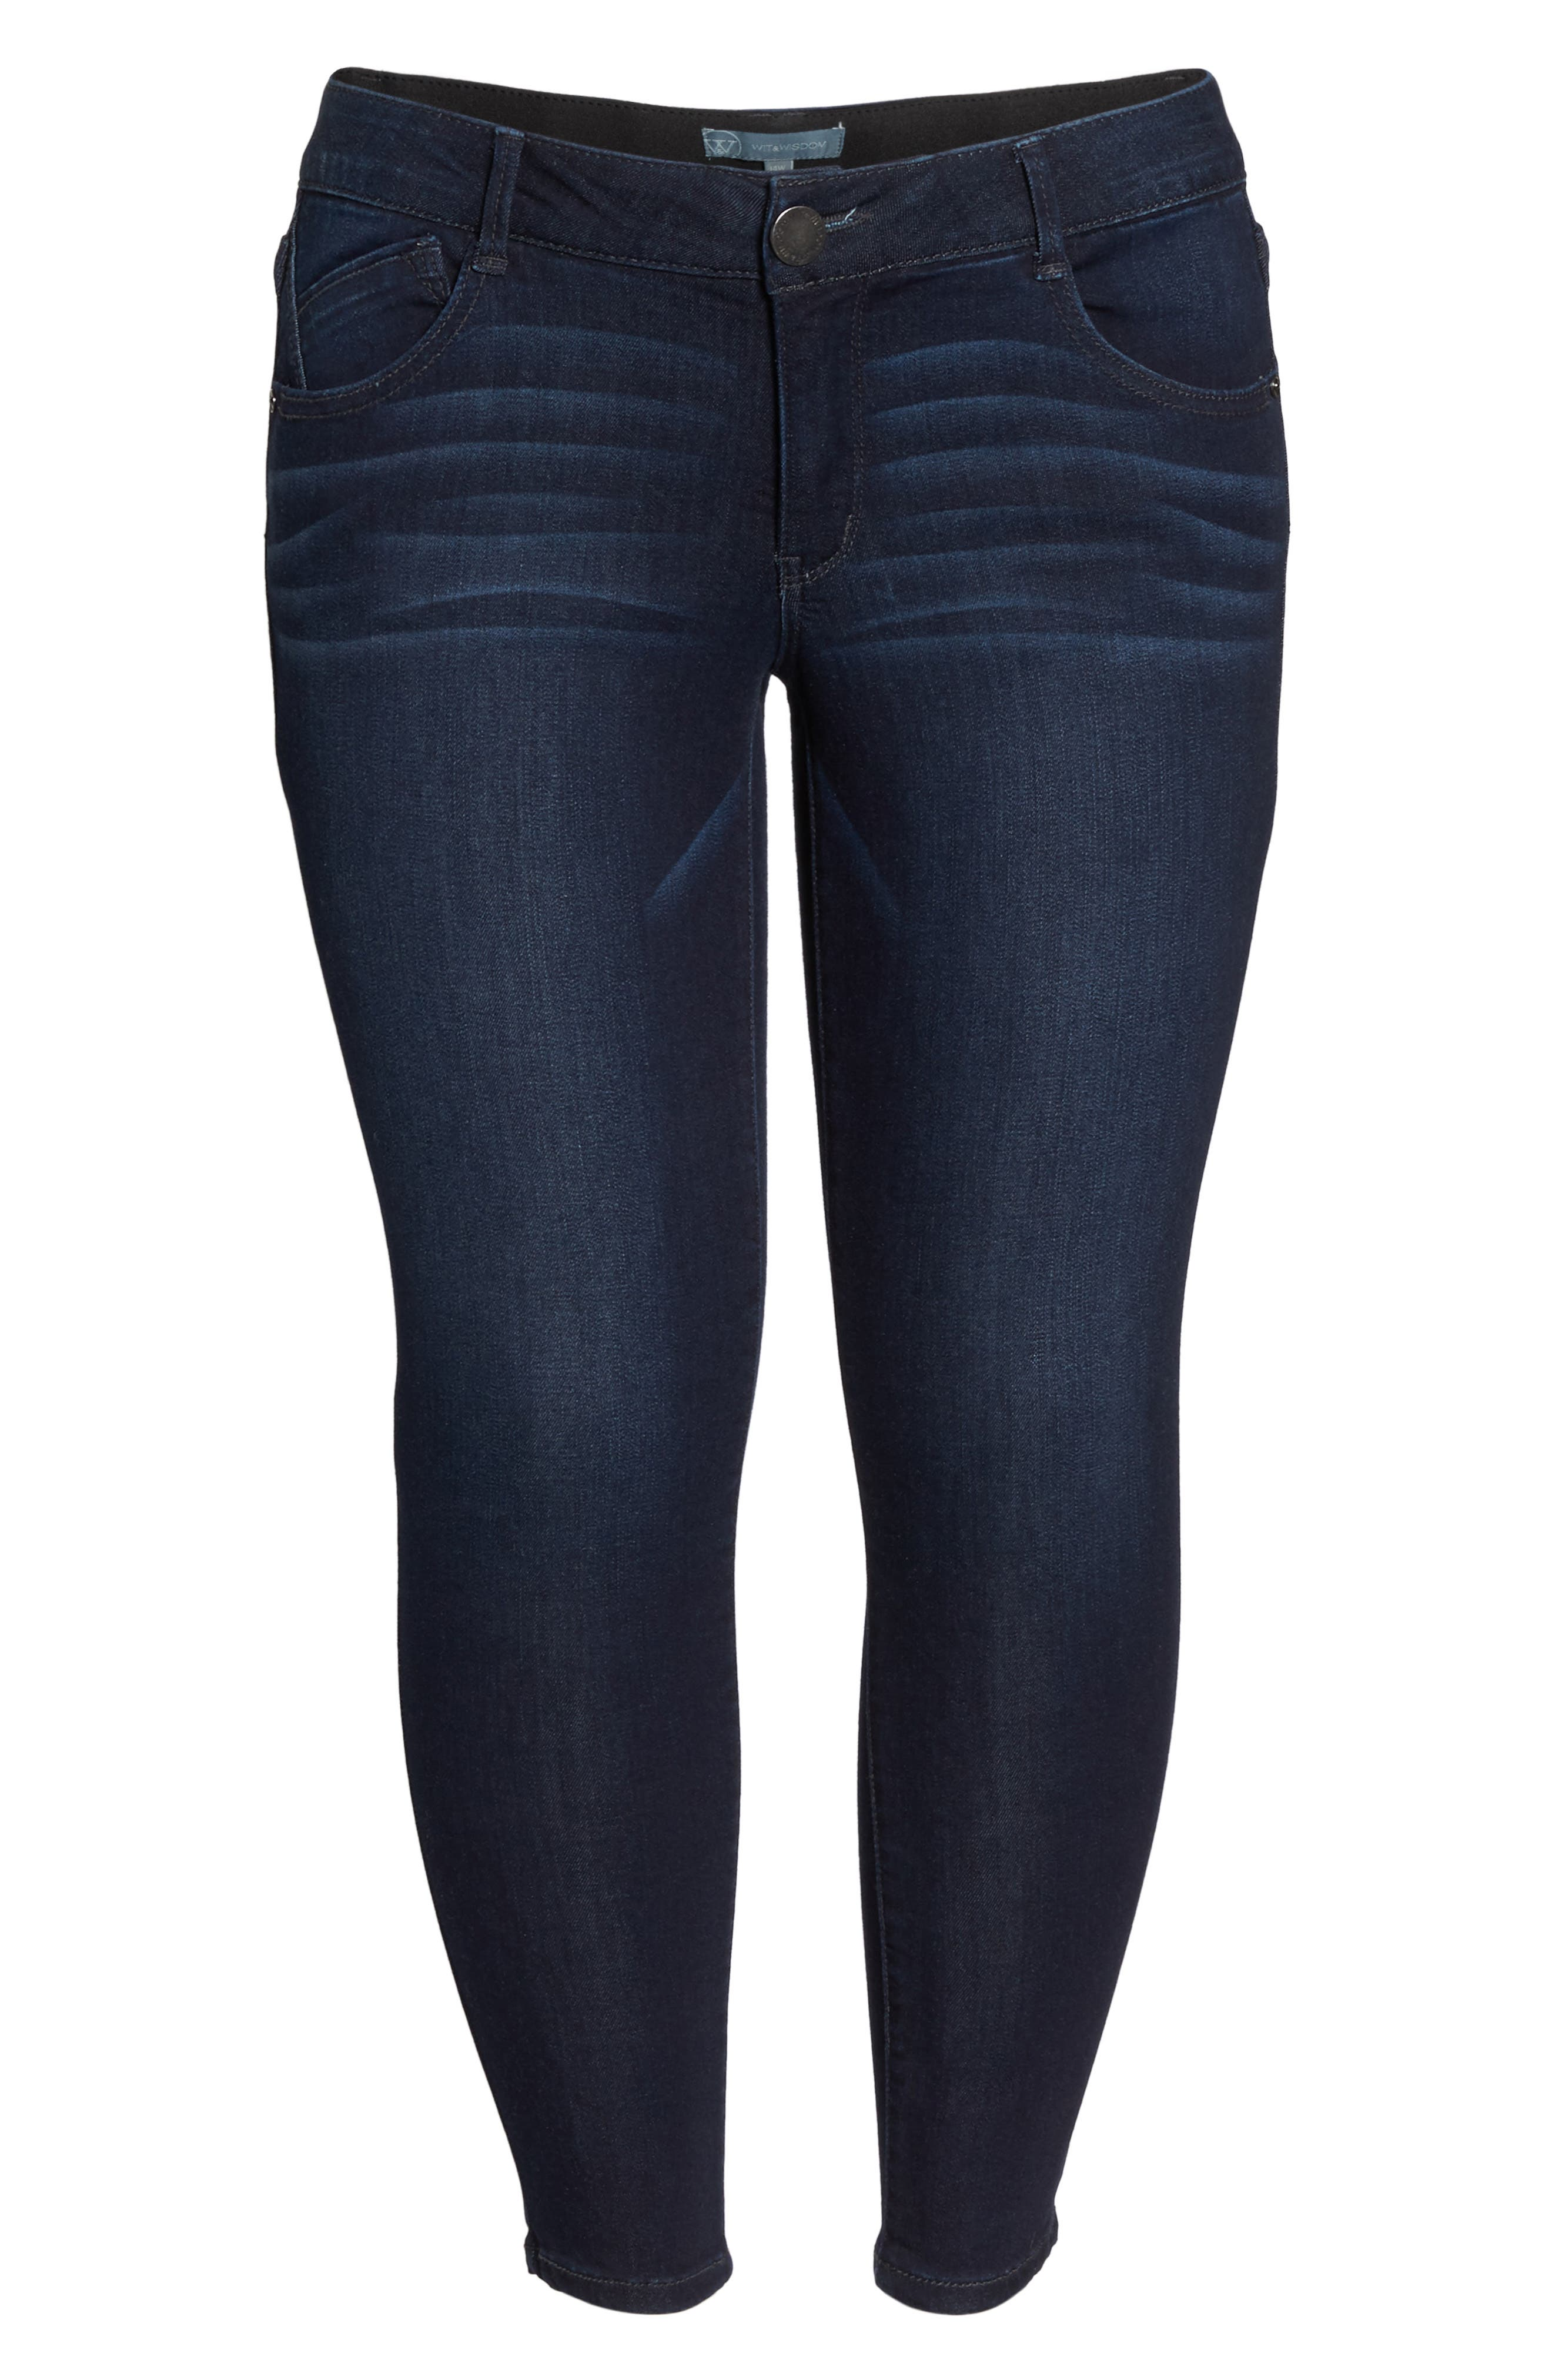 Ab-solution Luxe Touch Ankle Skinny Jeans,                             Alternate thumbnail 7, color,                             In-Indigo